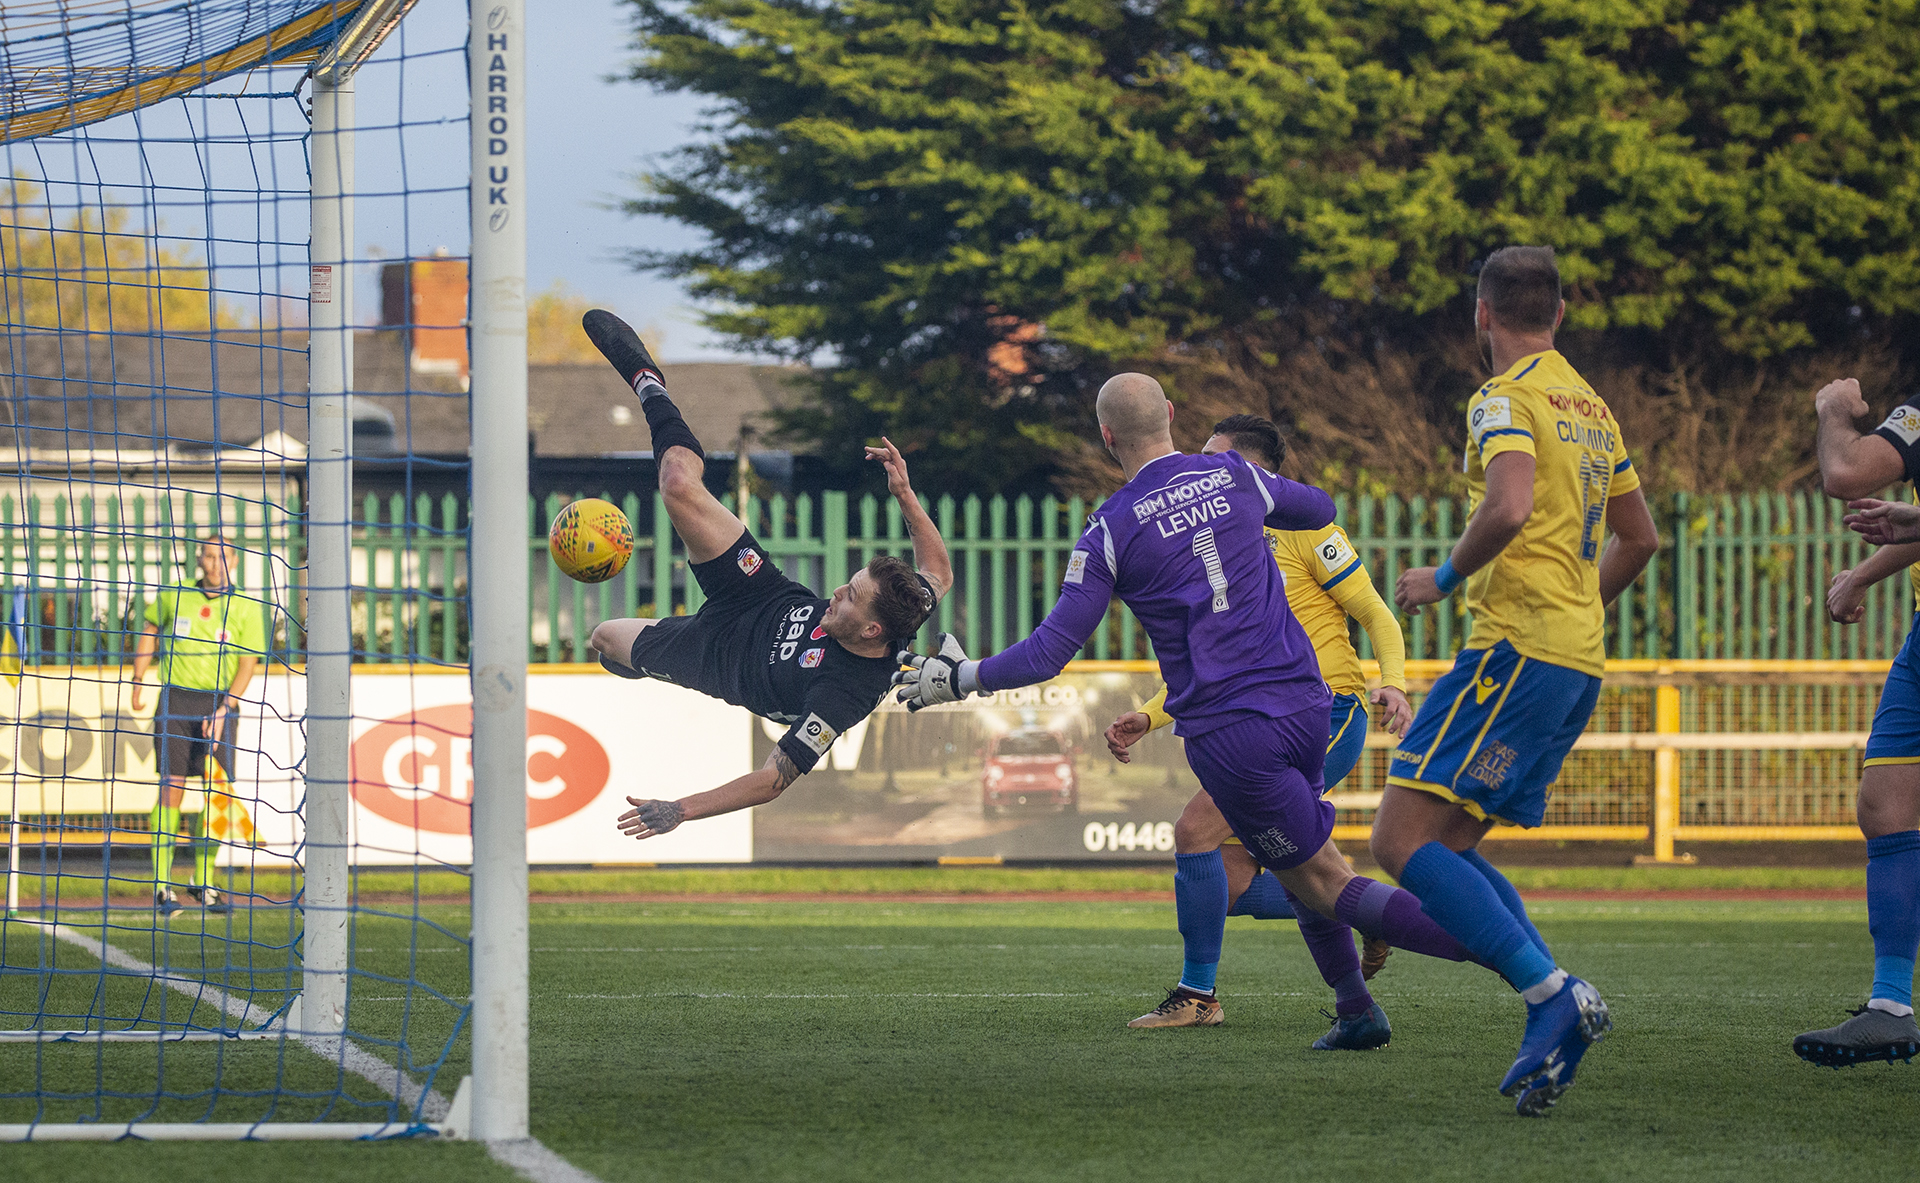 Jamie Insall's acrobatic volley sent The Nomads 2-0 up | © NCM Media